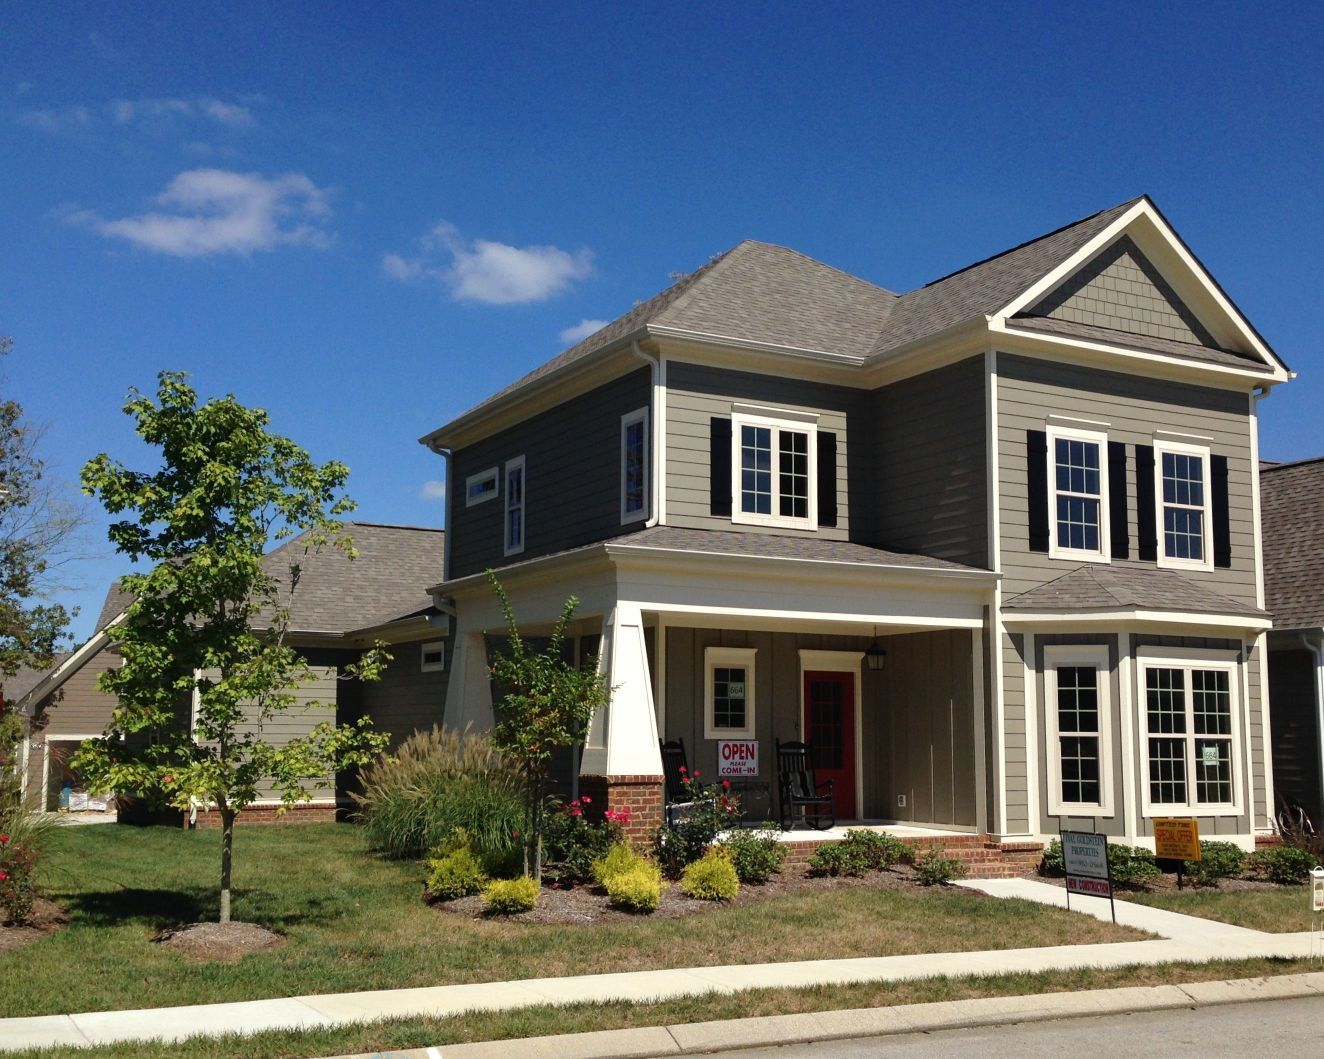 Stunning sherwin williams foothills house exterior picture